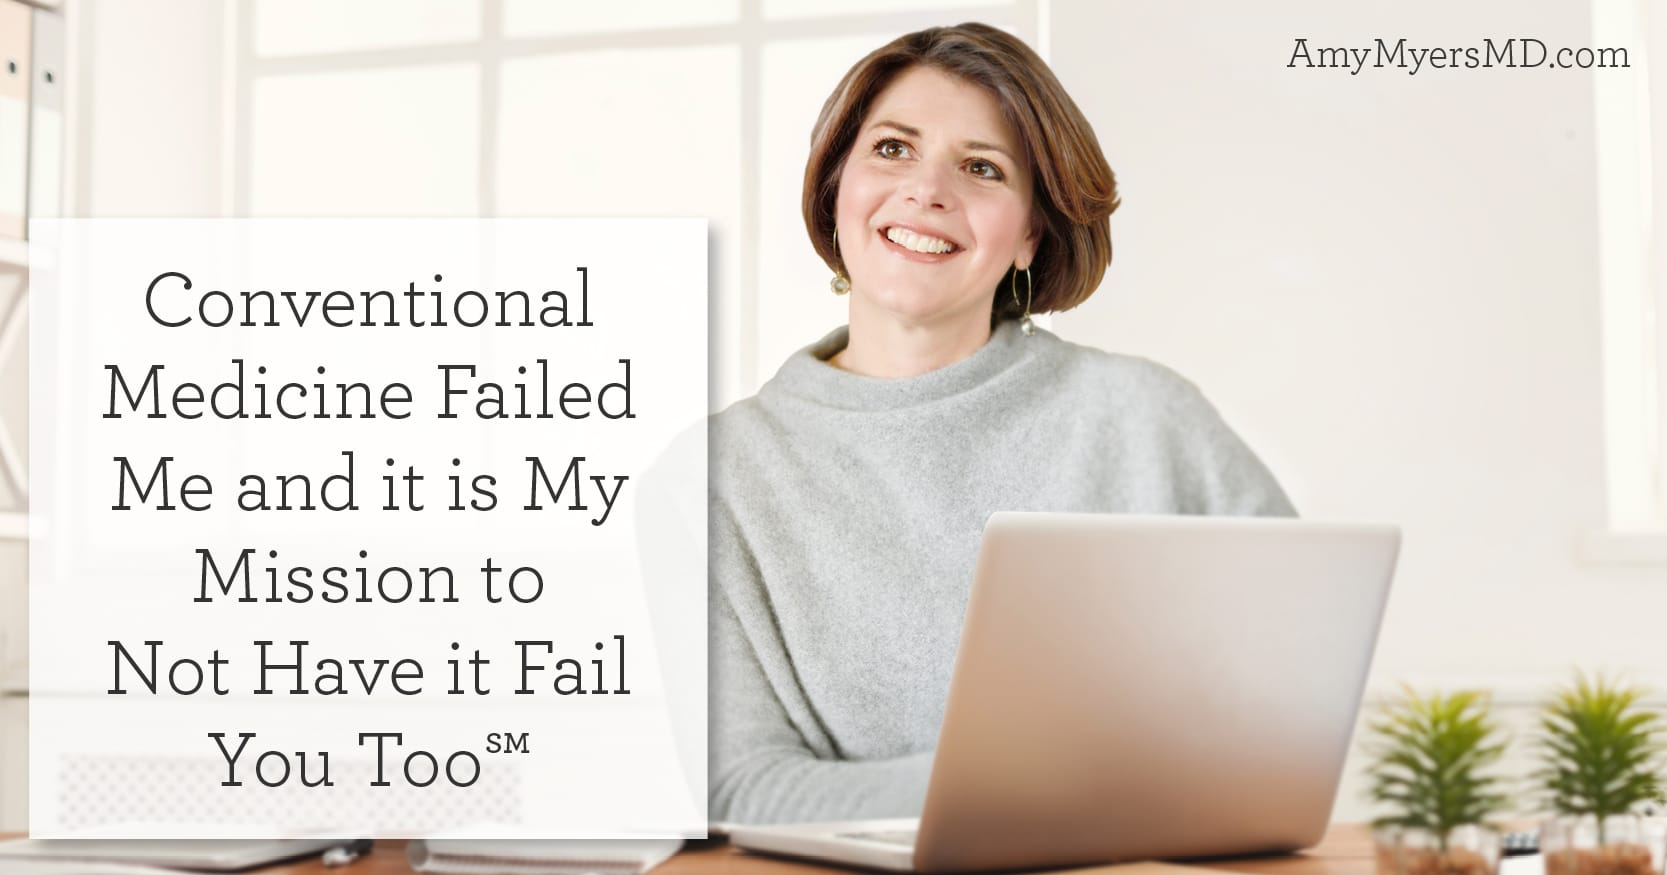 Conventional Medicine Failed Me - Dr. Amy Myers - Featured Image - Amy Myers MD